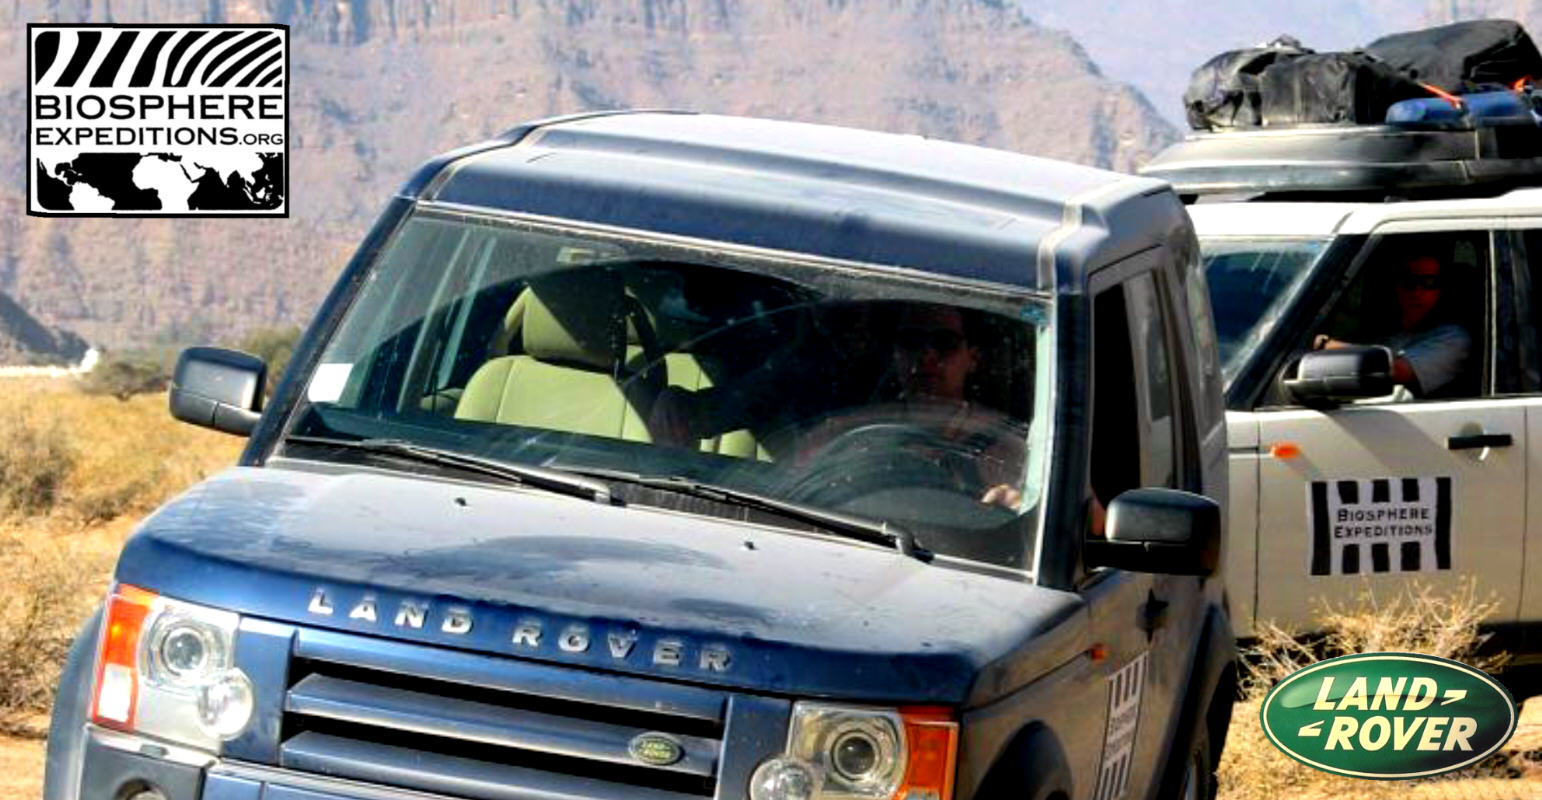 LAND ROVER: in Namibia con Biosphere Expeditions